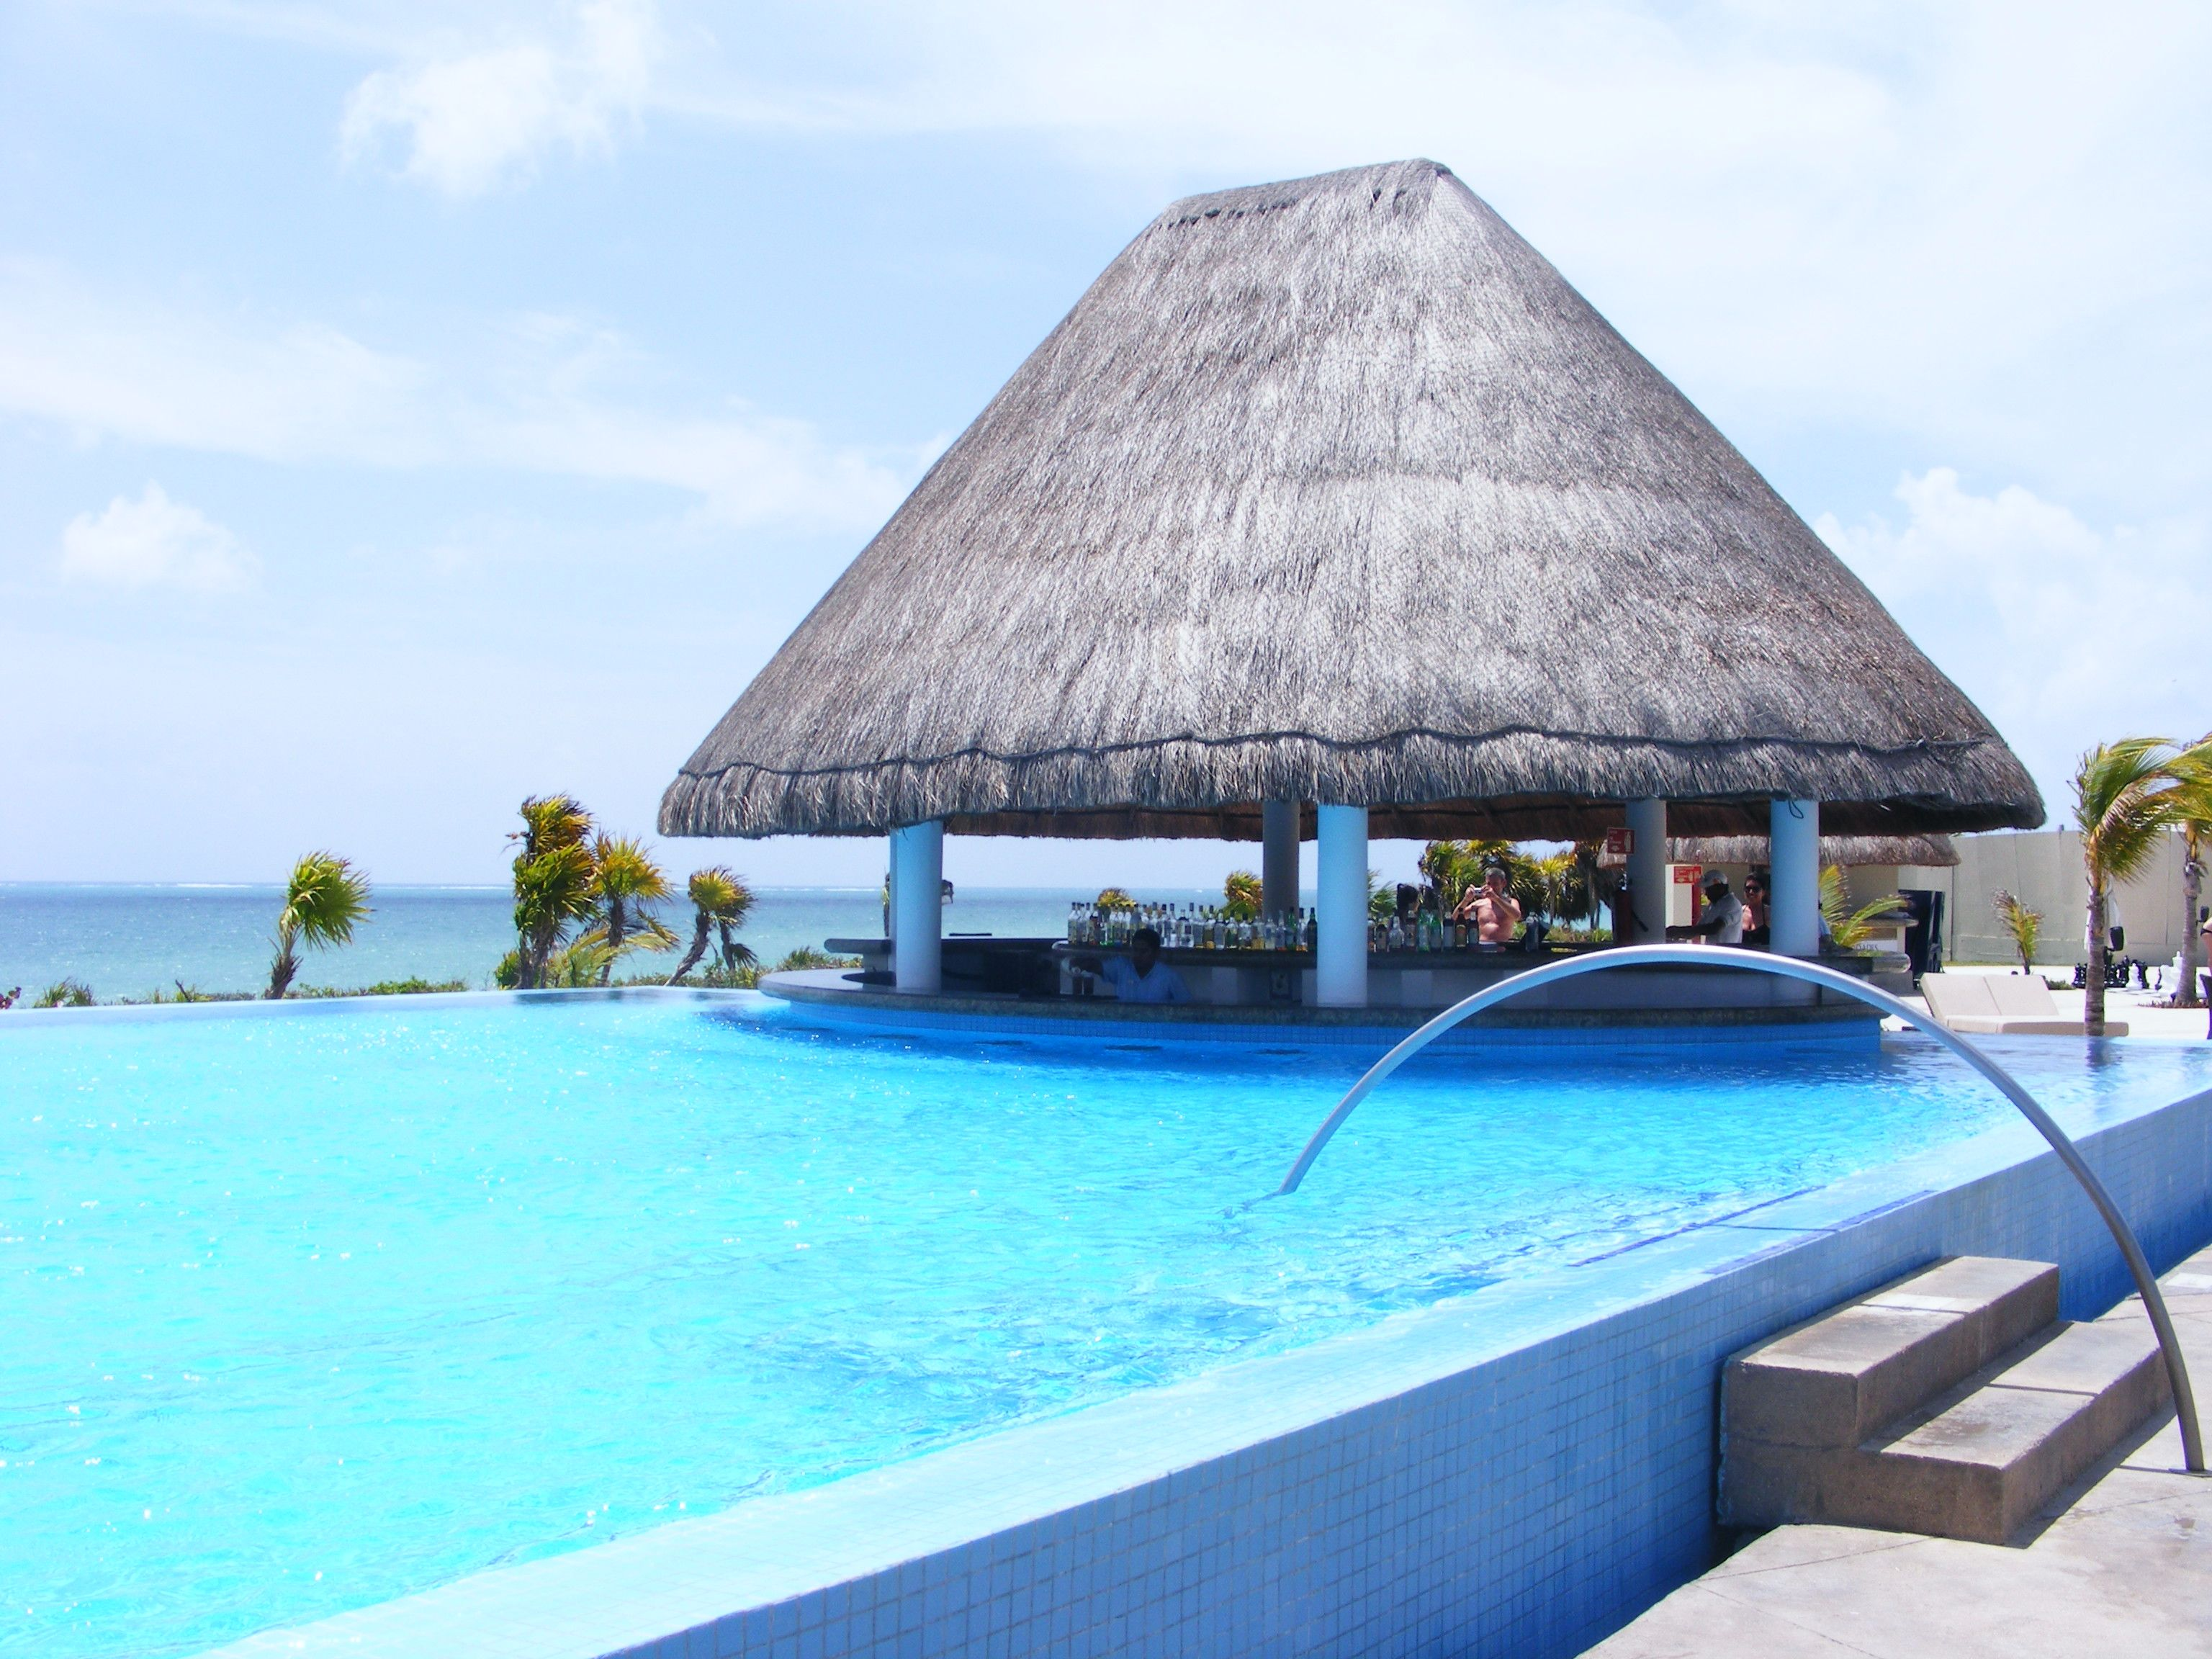 Christmas In Cancun.Cancun Mexico Moon Palace The Lap Pool Love It Travel